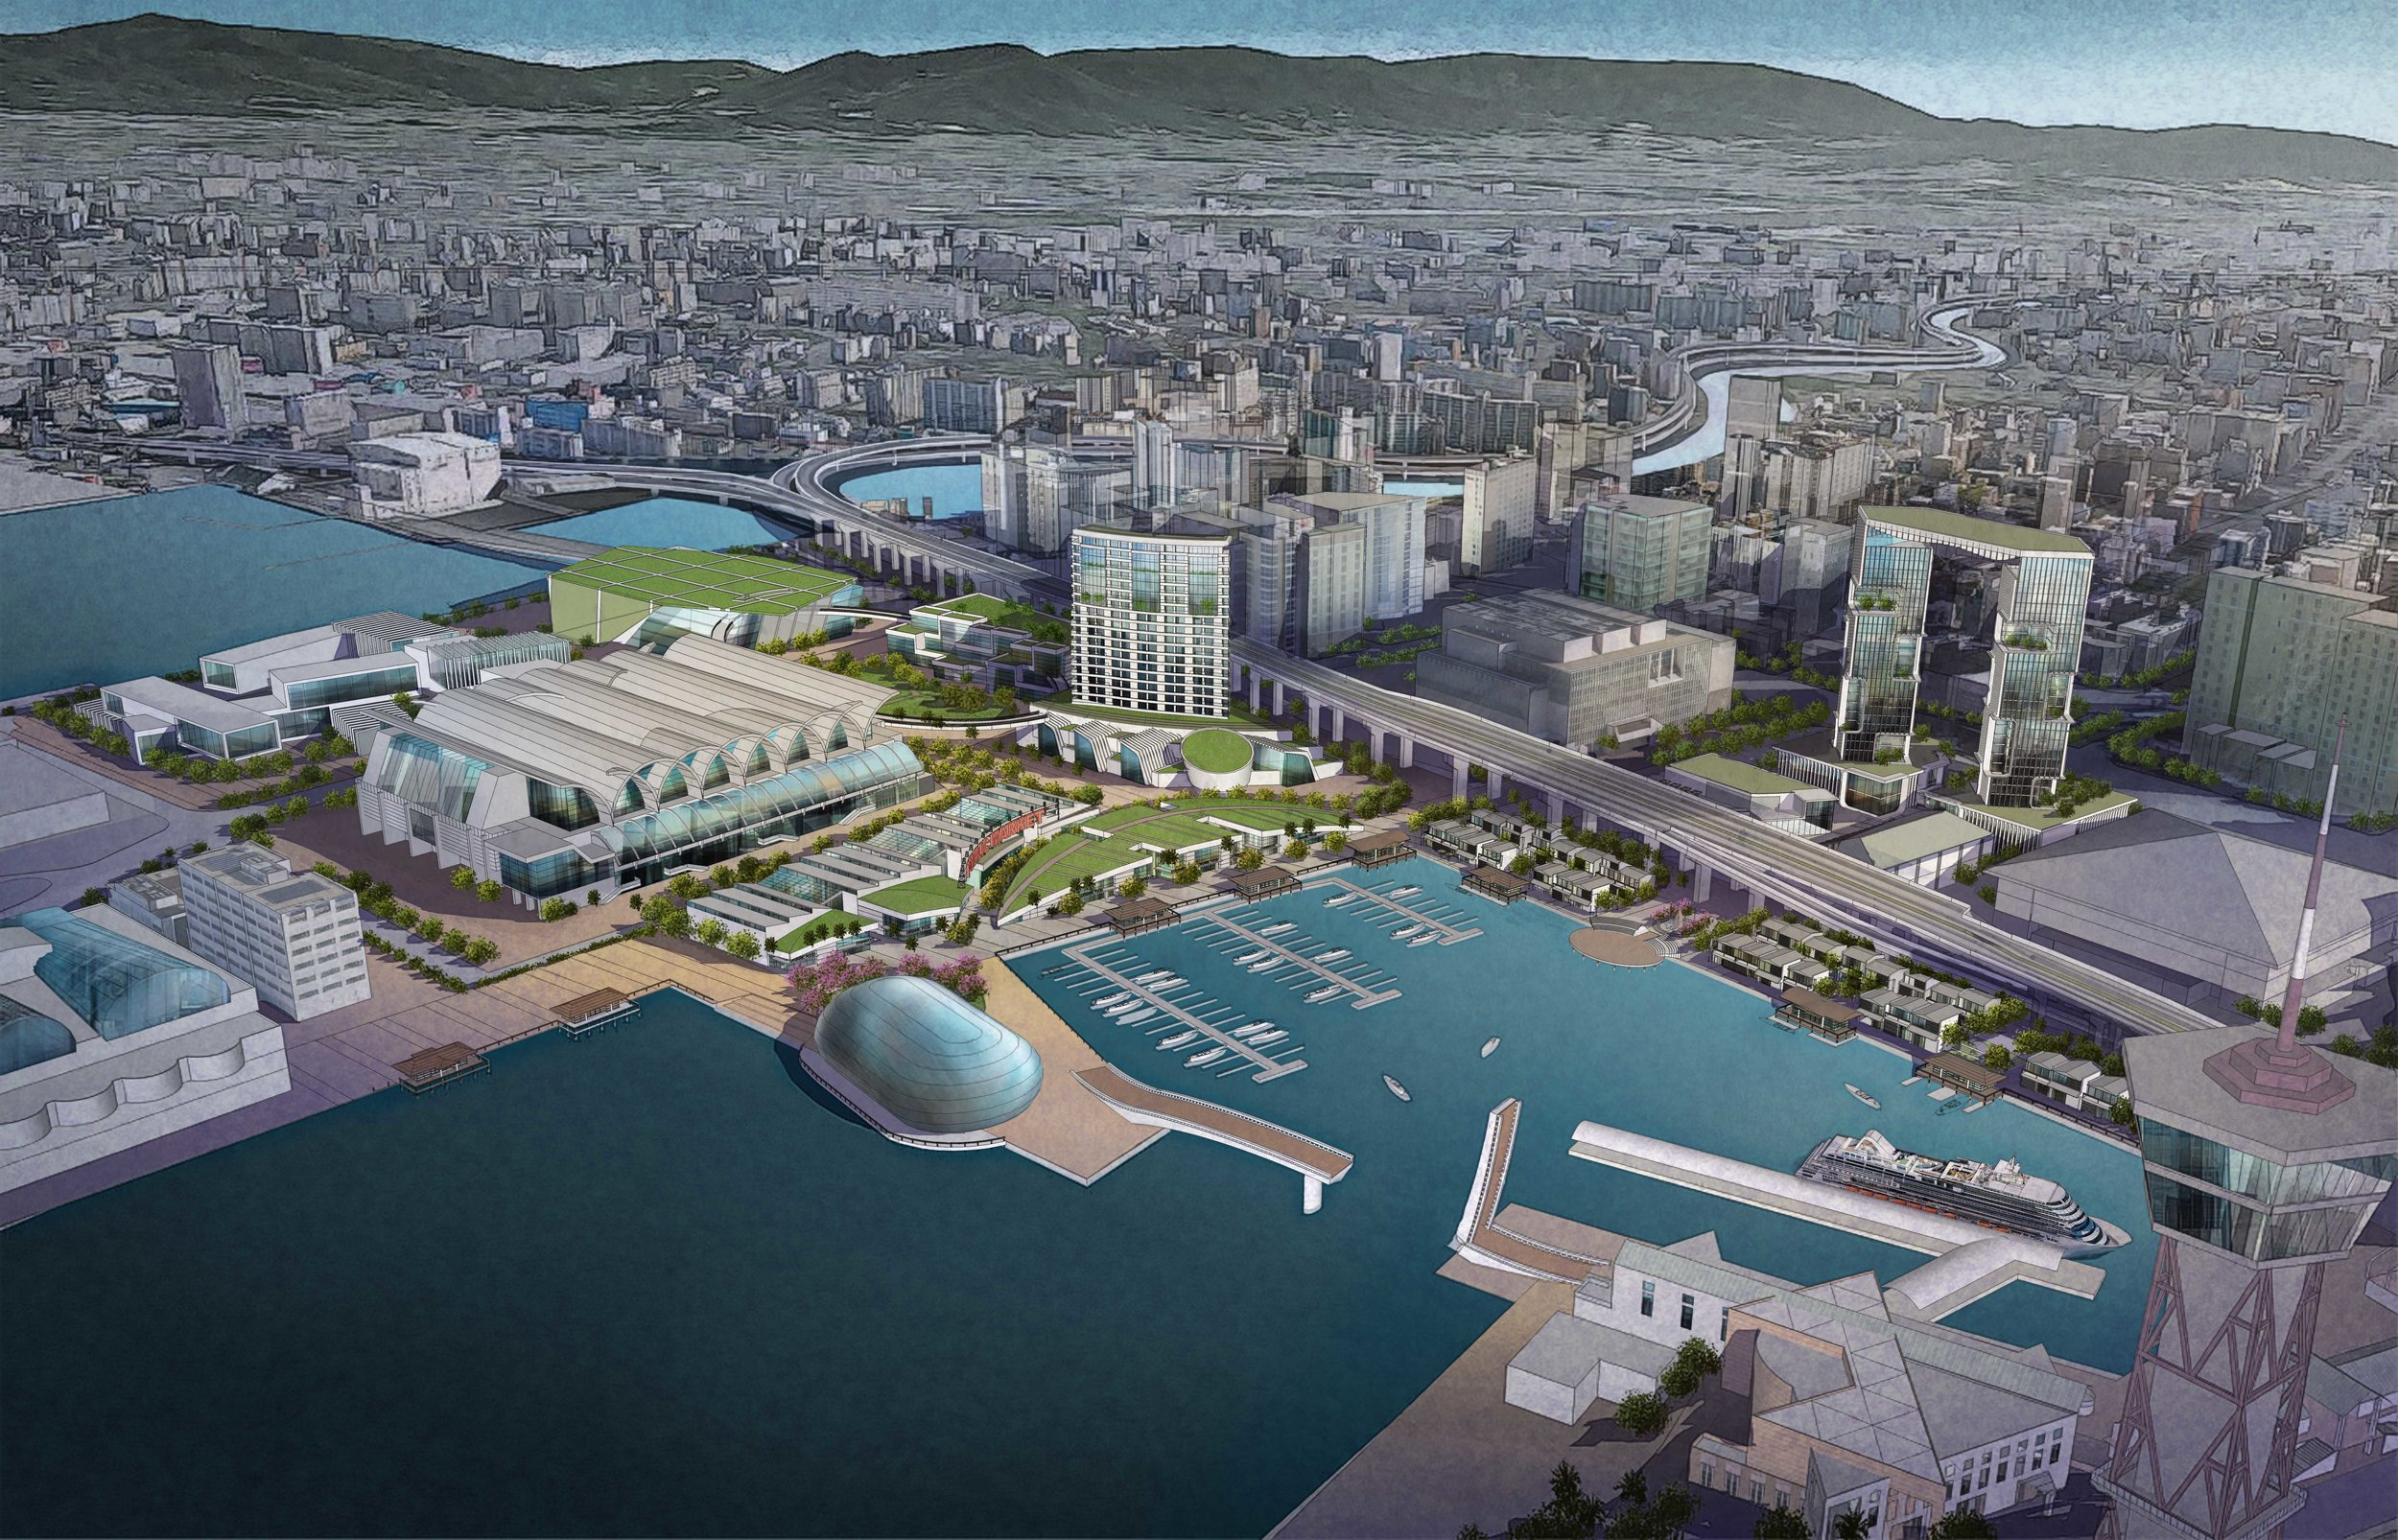 Fukuoka Waterfront Master Plan